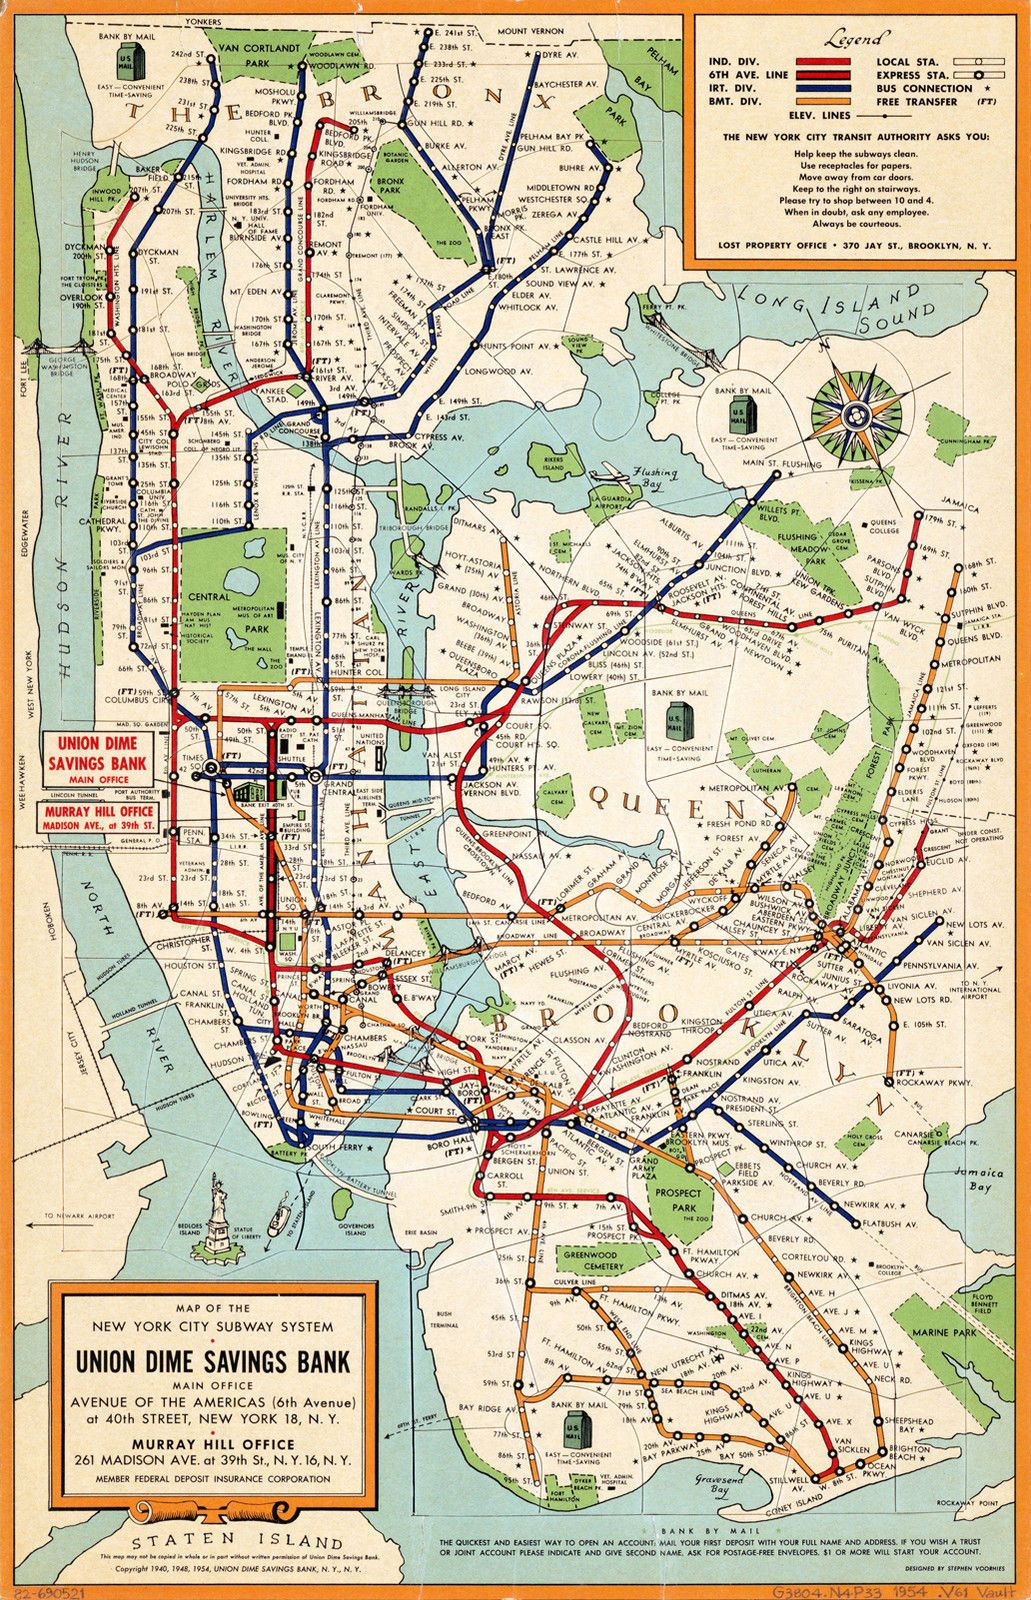 Subway Map Nyc 1980.Early York City Subway System Map Wall Poster Print Decor Vintage